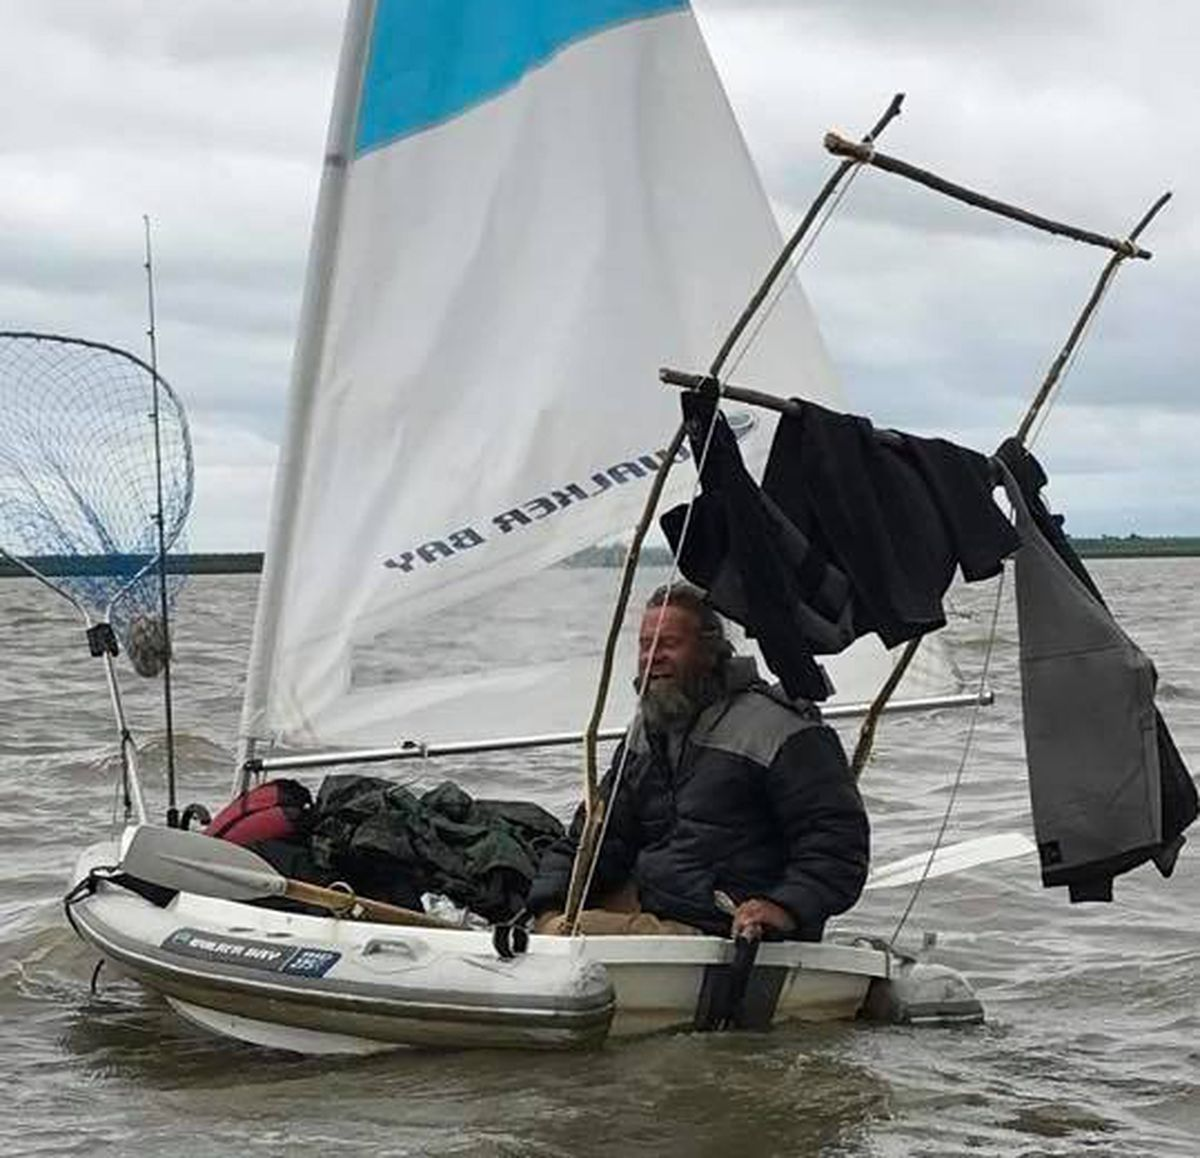 fr5zwdfrbjfbljbk7hye2i2vvi-jpg.47882_Homeless Man Sails 8 Foot Dinghy to Russia from Alaska_Boat Punk / Sailing_Squat the Planet_12:53 PM